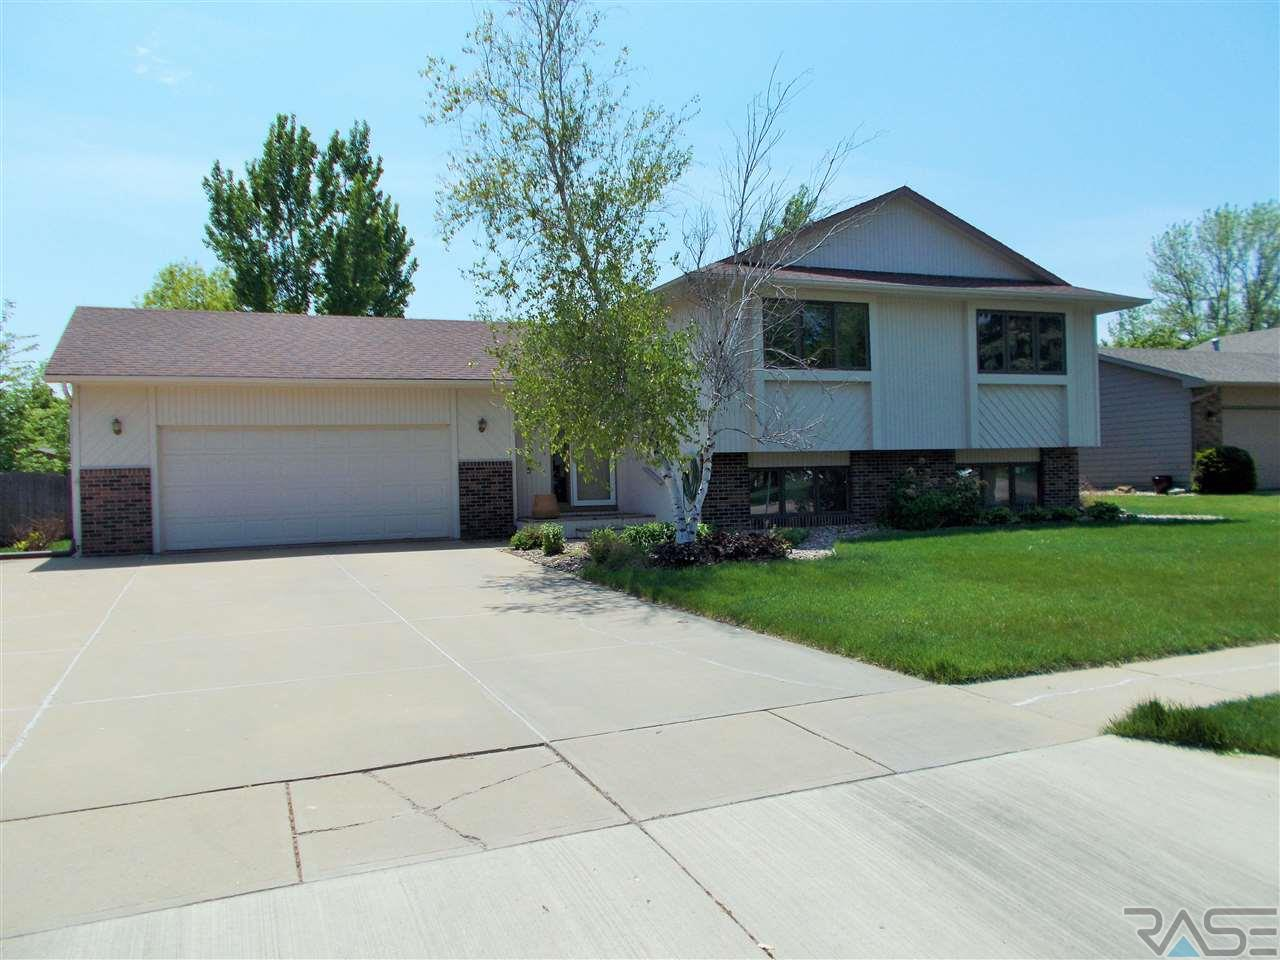 6505 W 32nd St, SIOUX FALLS